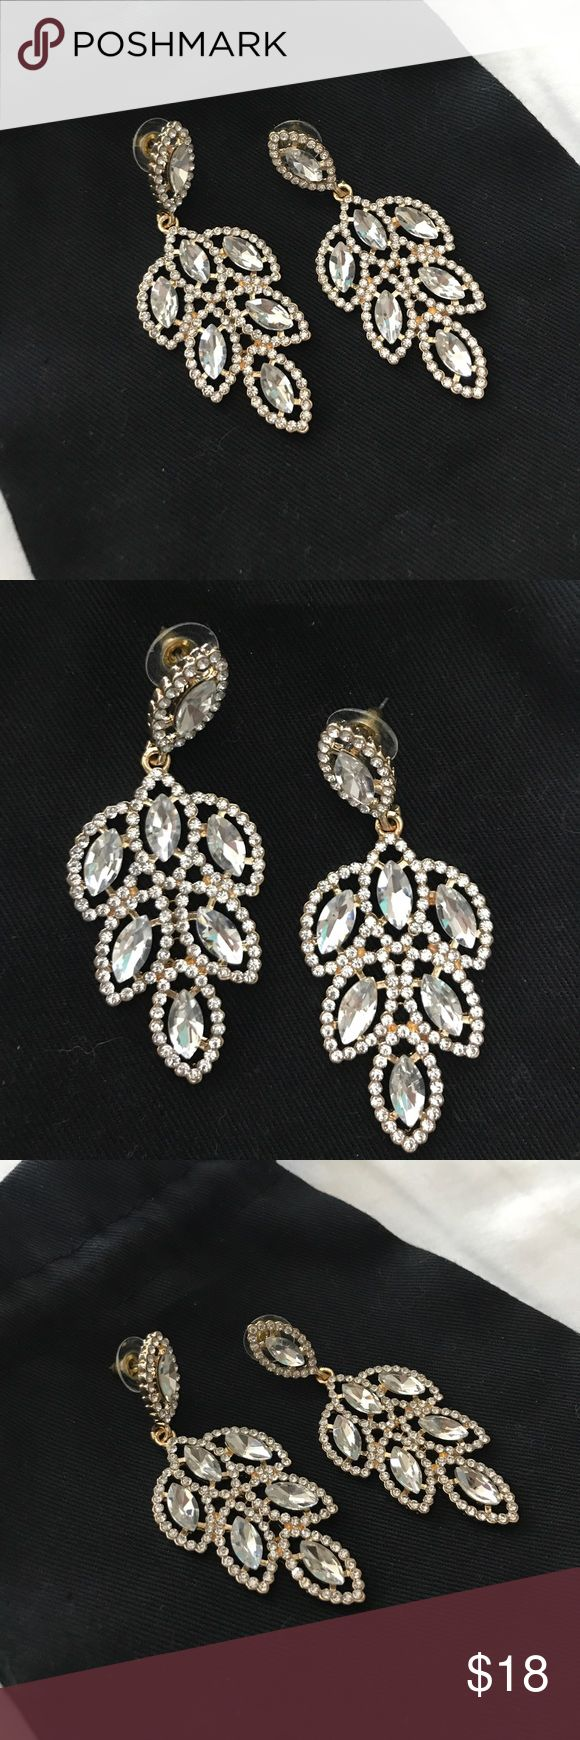 *SALE* Glam Crystal Earrings FINAL PRICE DROP Brand new crystal drop earrings perfect for prom pageant or any special occasion. Gold backings. These earrings are 2.75 inches long by 1.2 inches wide. Jewelry Earrings